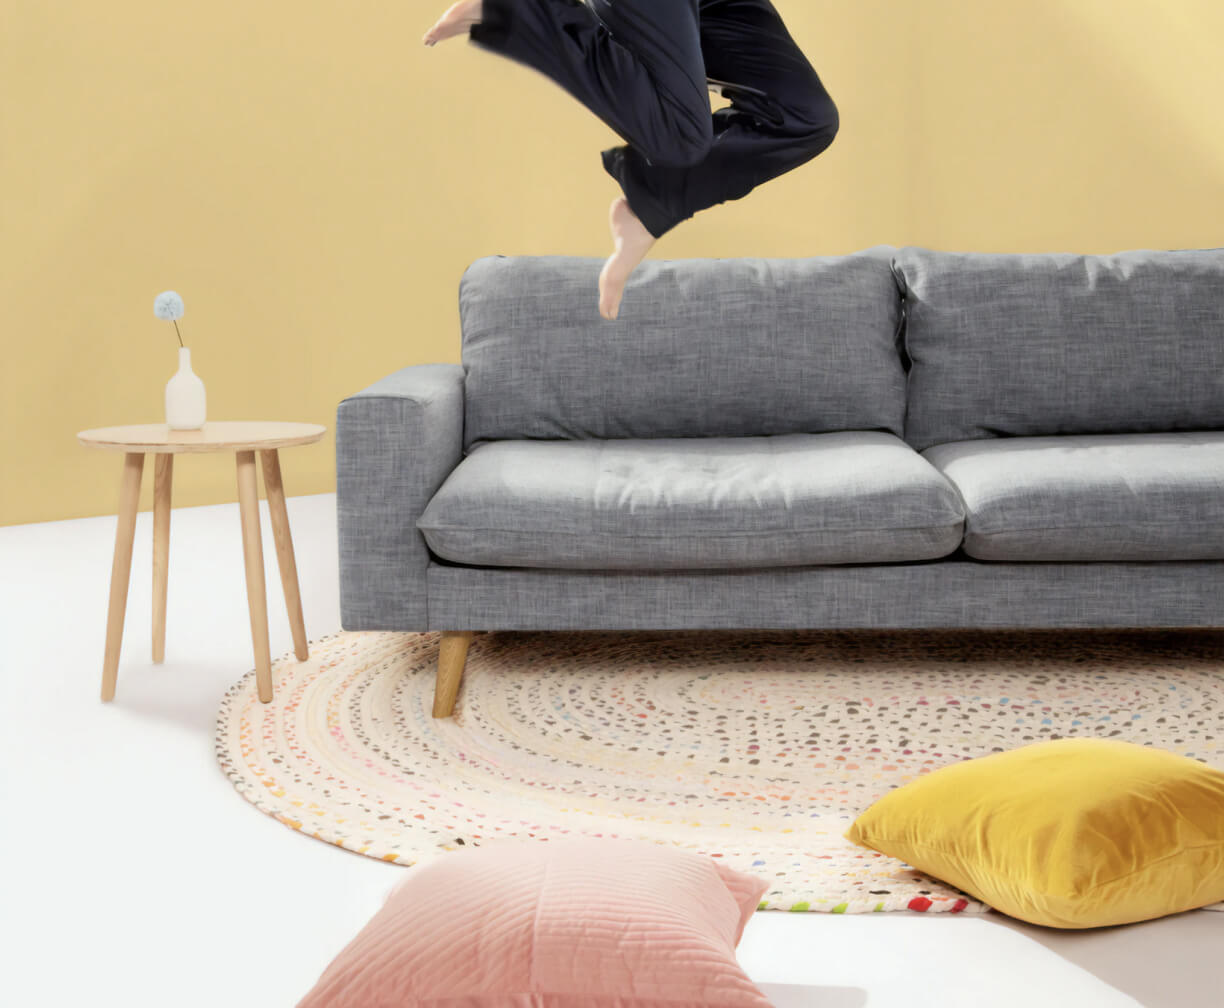 Person jumping off their living room floor.